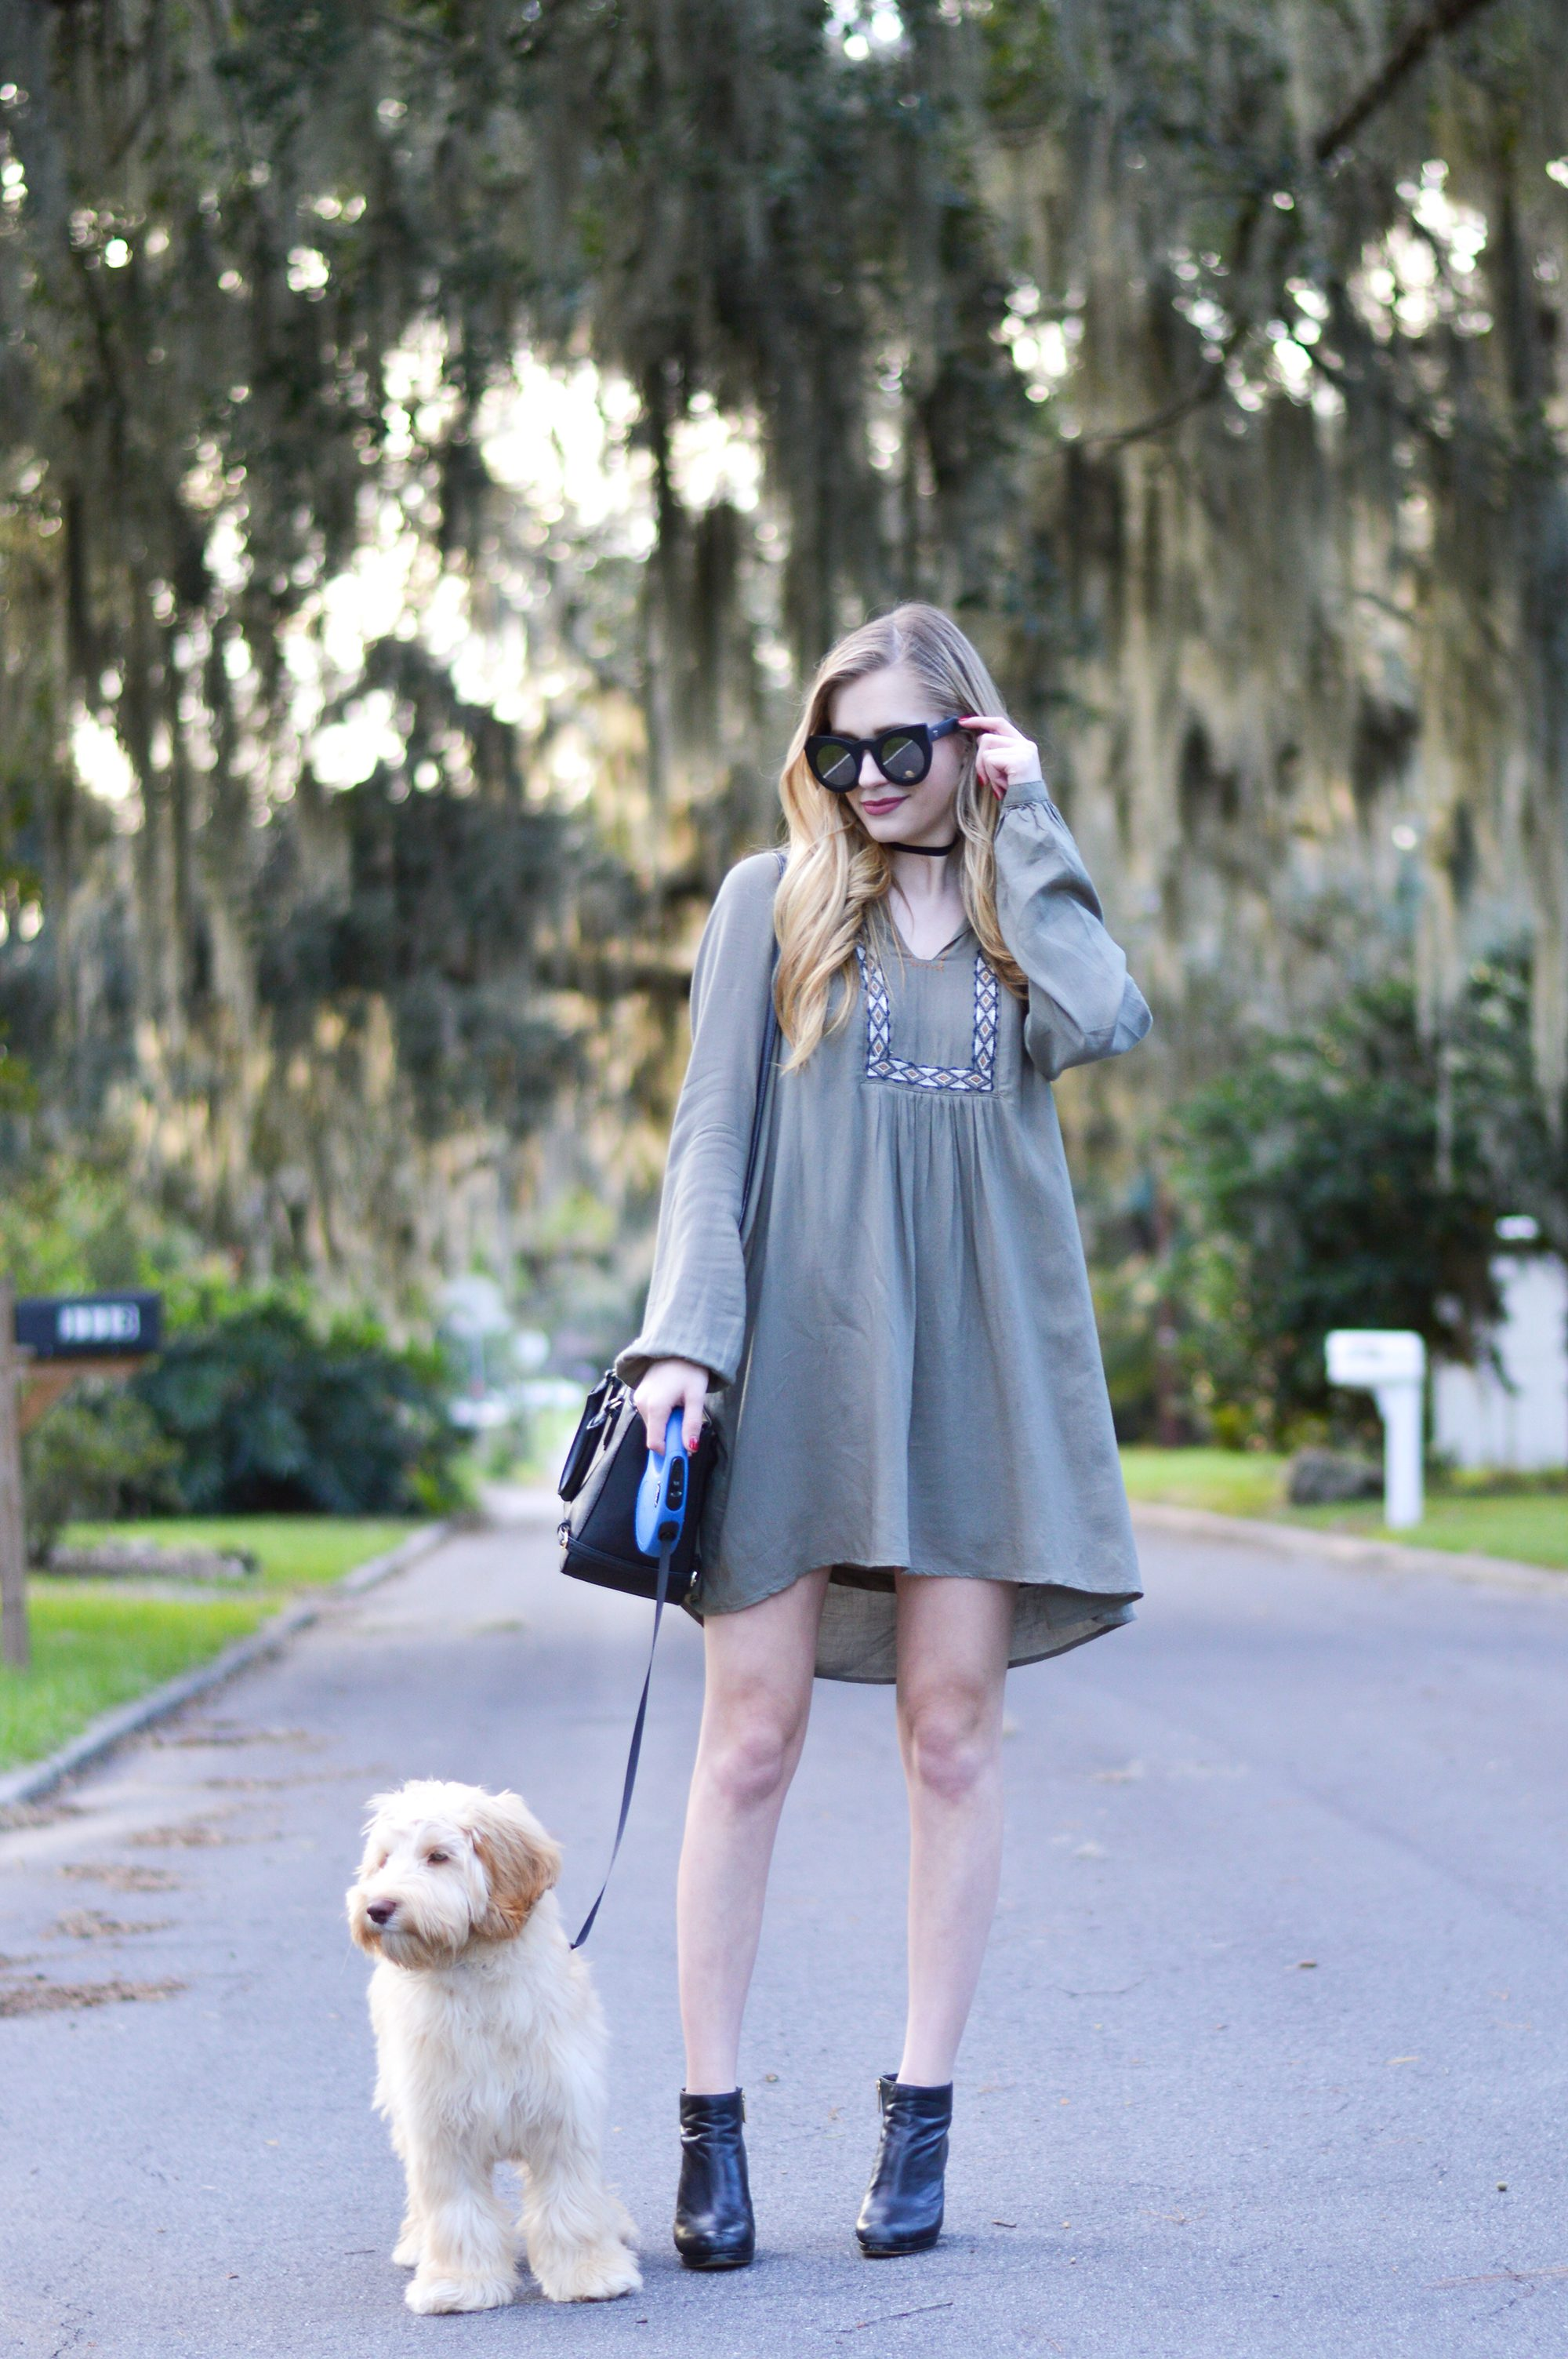 styelled-blog-sweater-weather-olive-labradoodle-fall-style-fashion-blogger-ootd-booties-dress-october-03